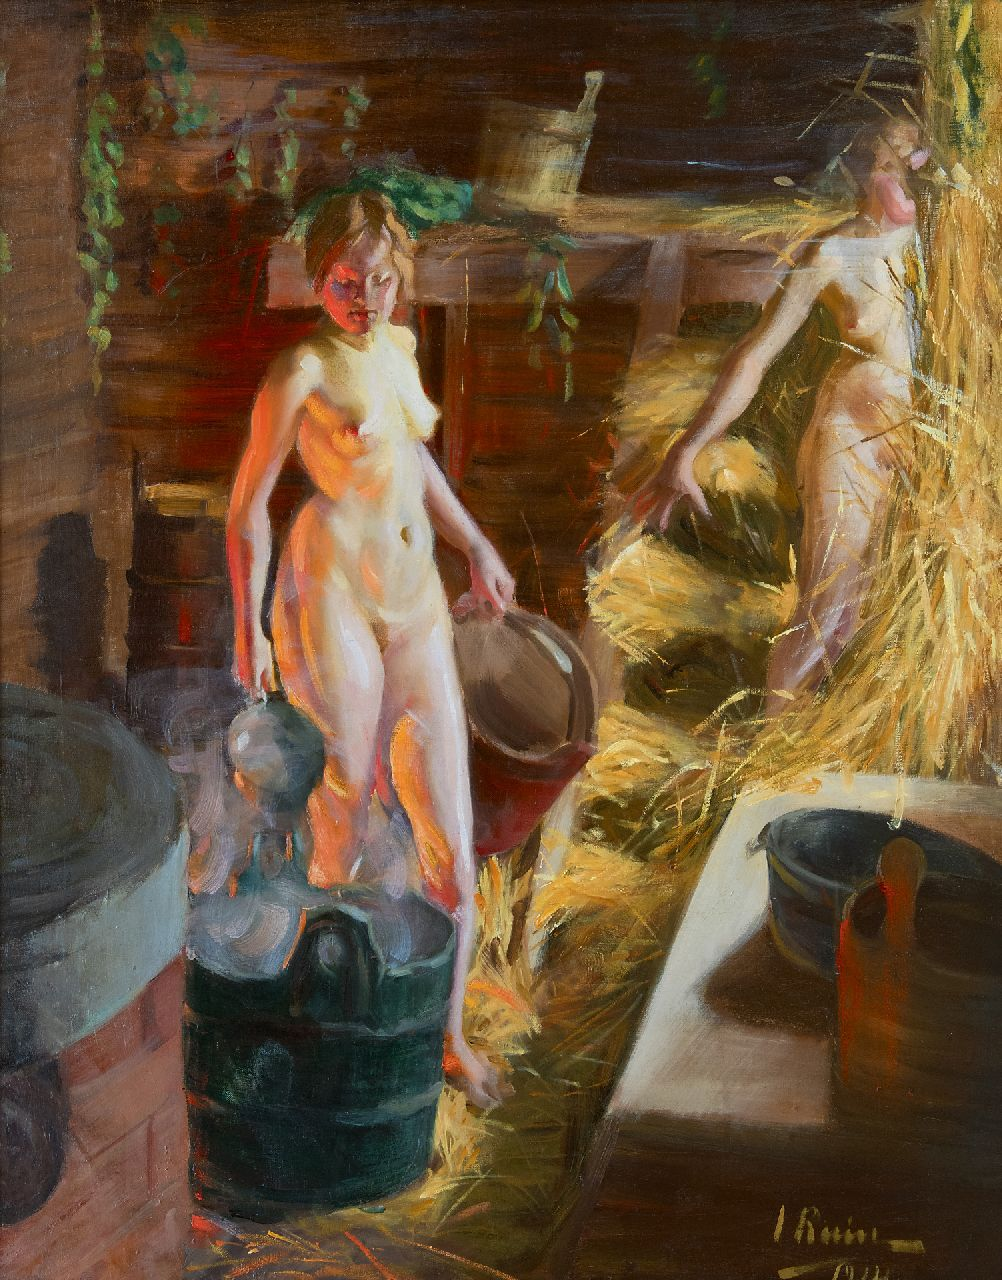 Ingrid Linnea Ruin | Two girls in a sauna, oil on canvas, 92.3 x 76.3 cm, signed l.r. and dated 1914